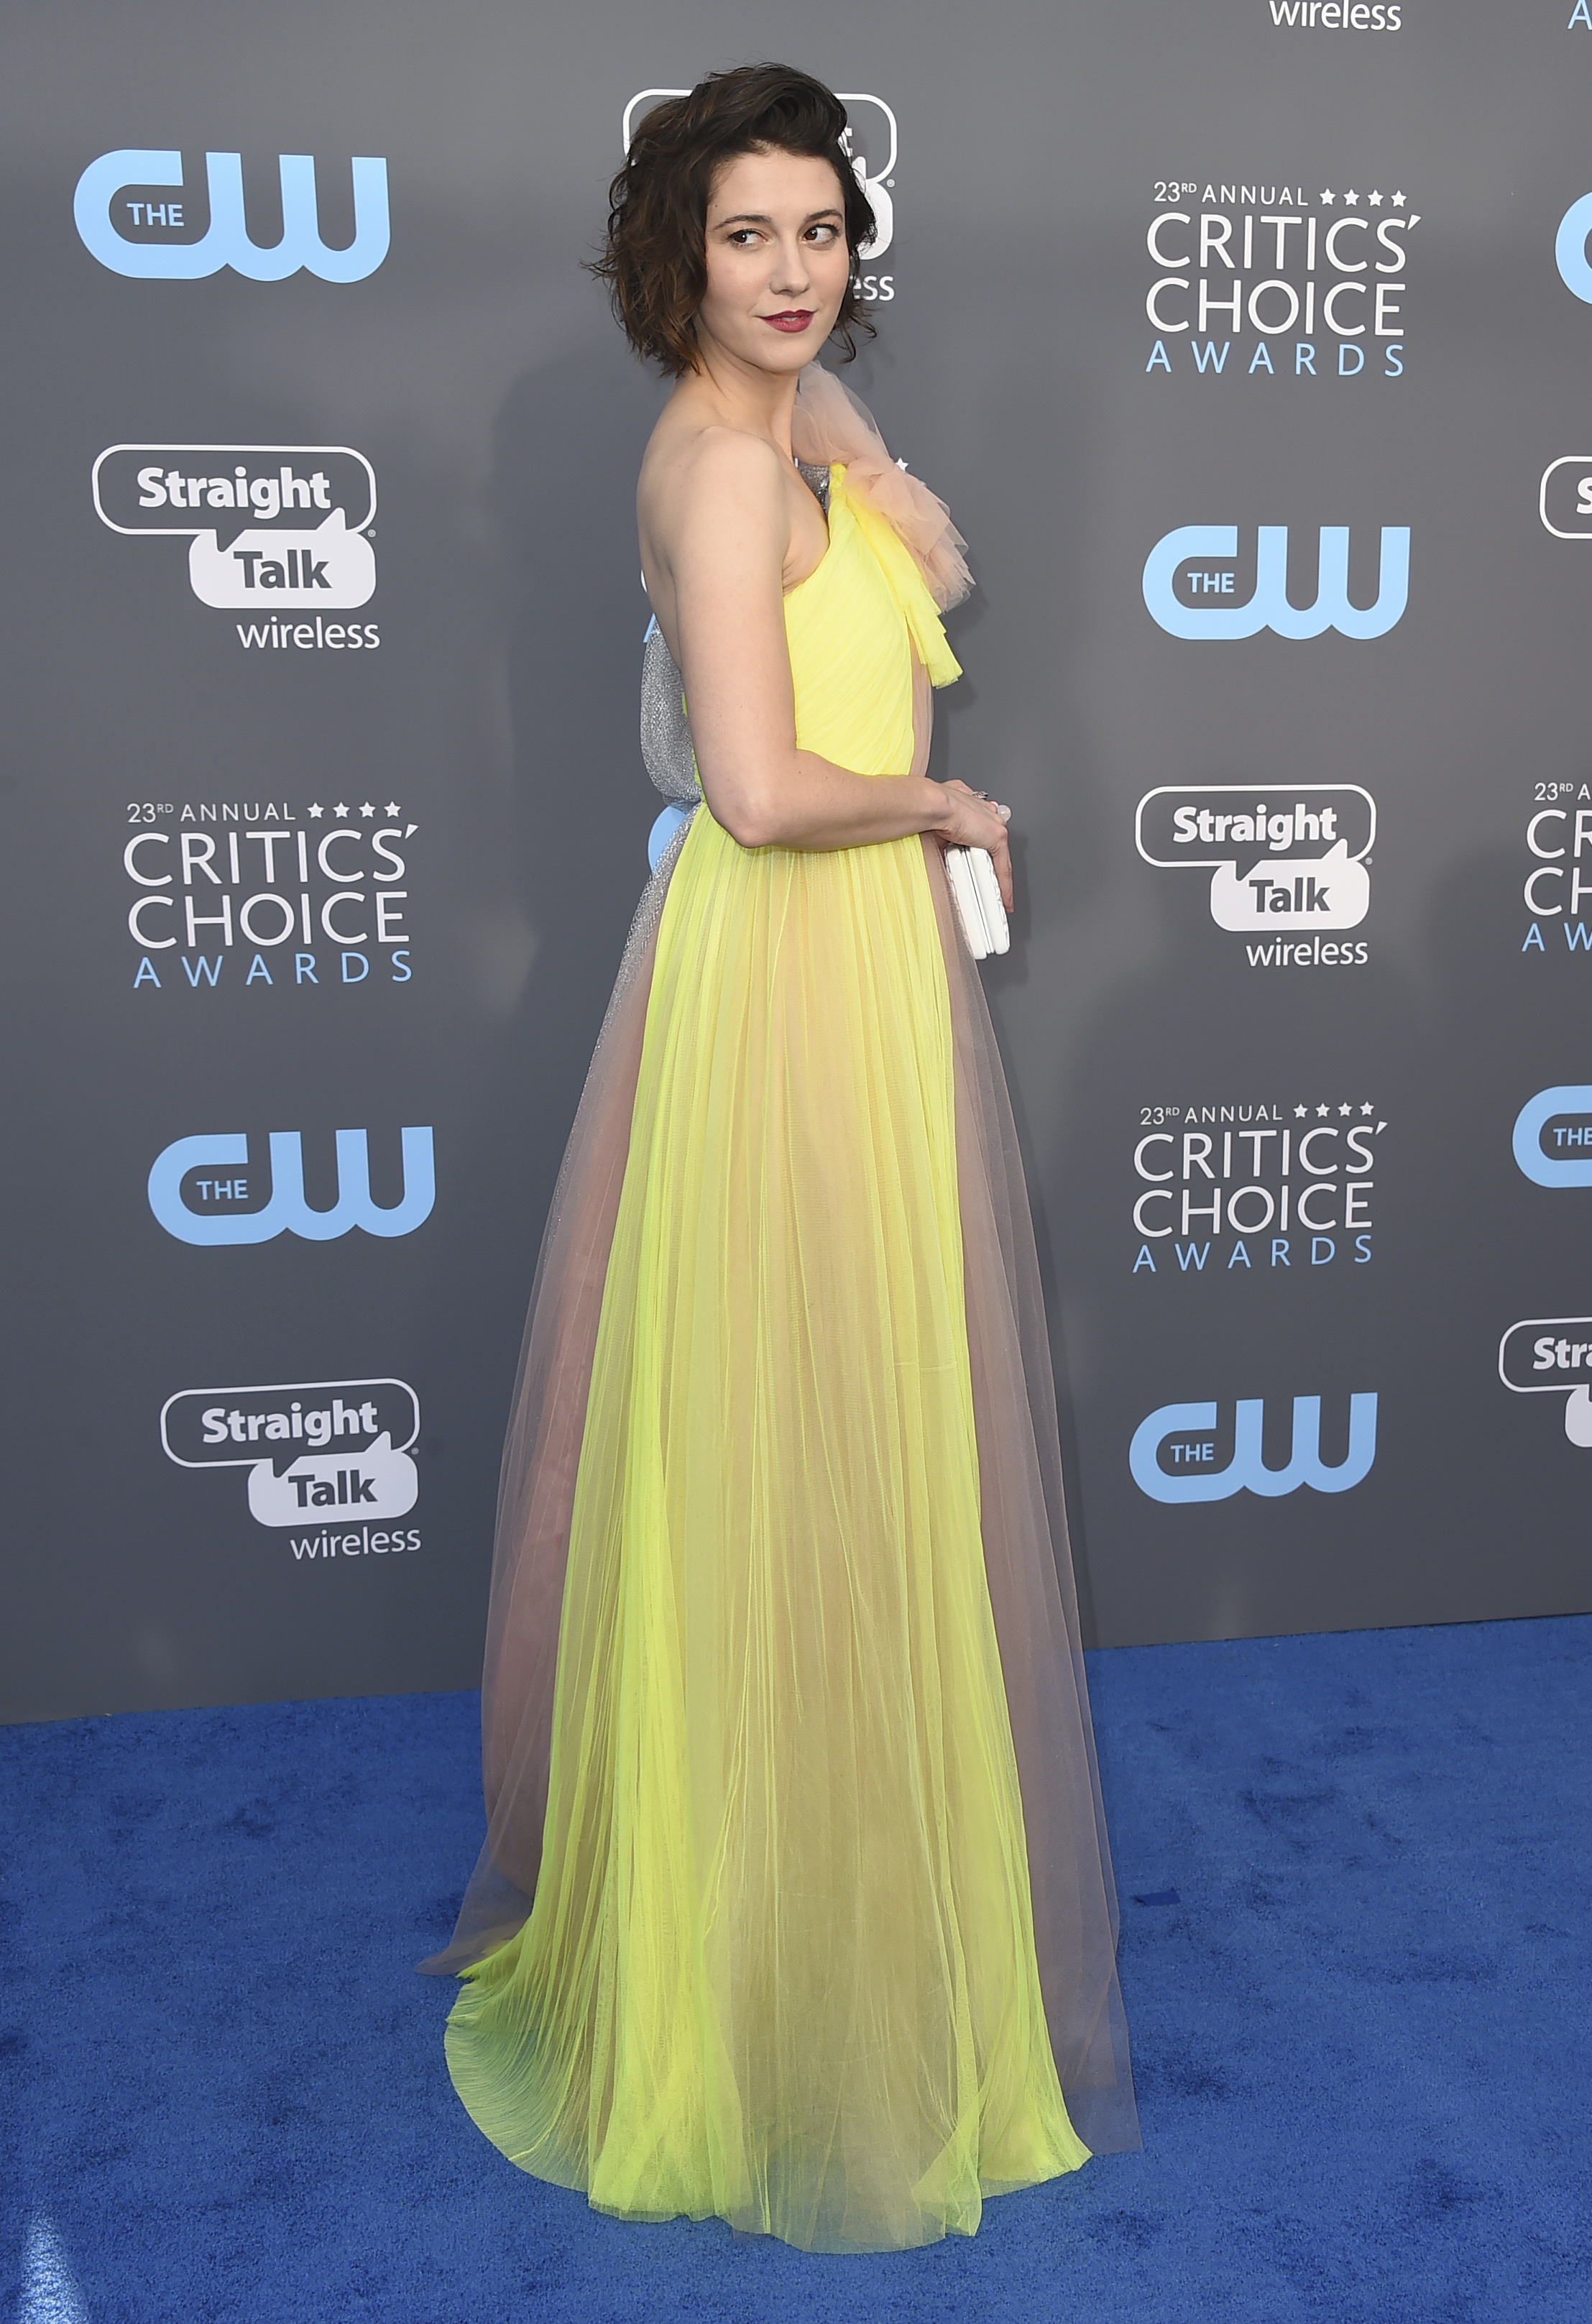 <div class='meta'><div class='origin-logo' data-origin='AP'></div><span class='caption-text' data-credit='Jordan Strauss/Invision/AP'>Mary Elizabeth Winstead arrives at the 23rd annual Critics' Choice Awards at the Barker Hangar on Thursday, Jan. 11, 2018, in Santa Monica, Calif.</span></div>